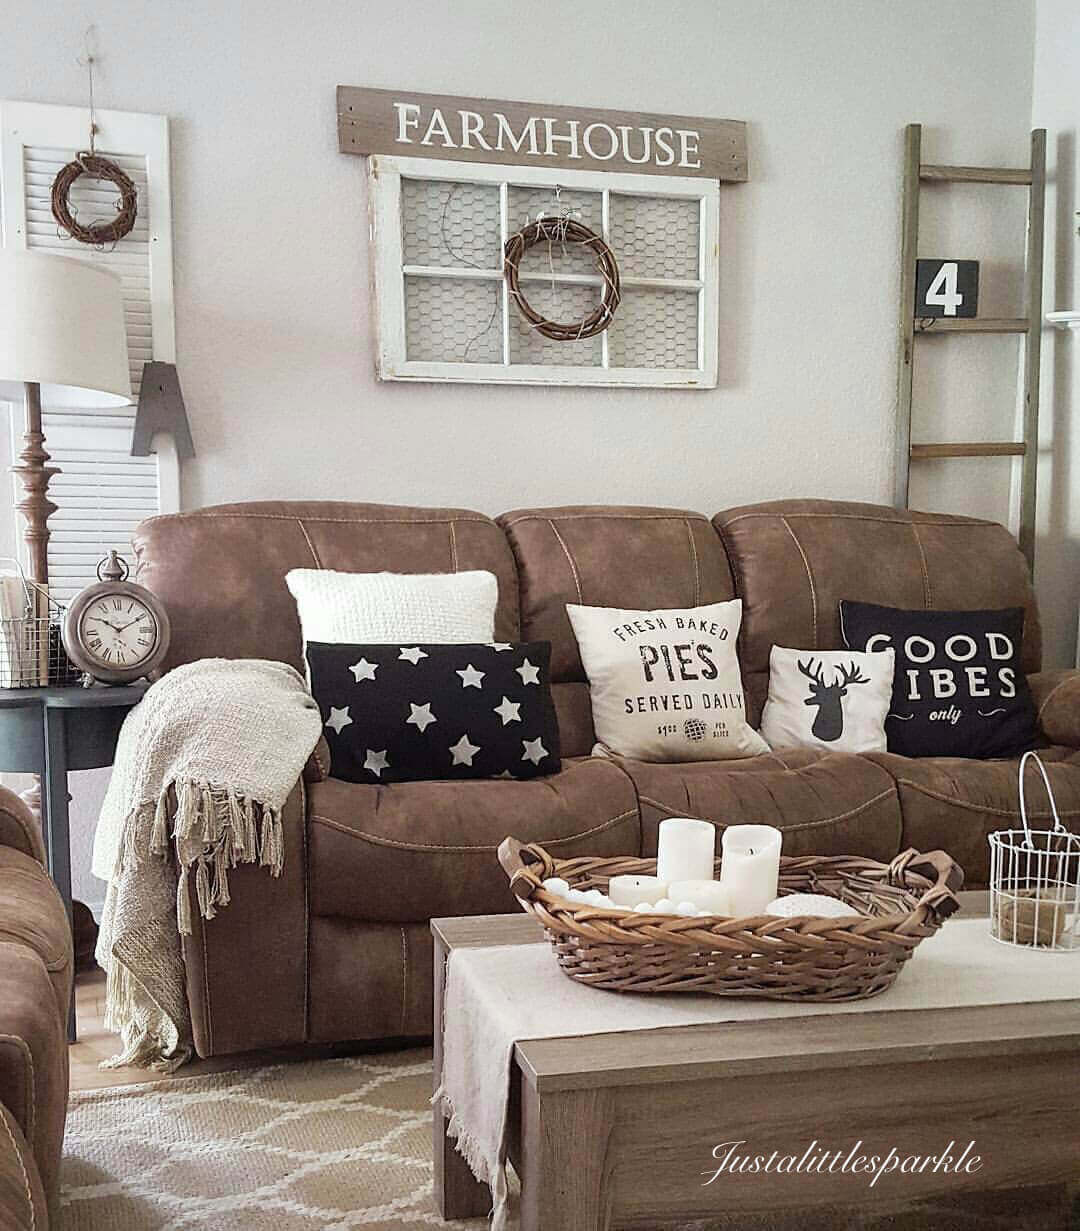 Farmhouse Living Room Ideas on a Budget